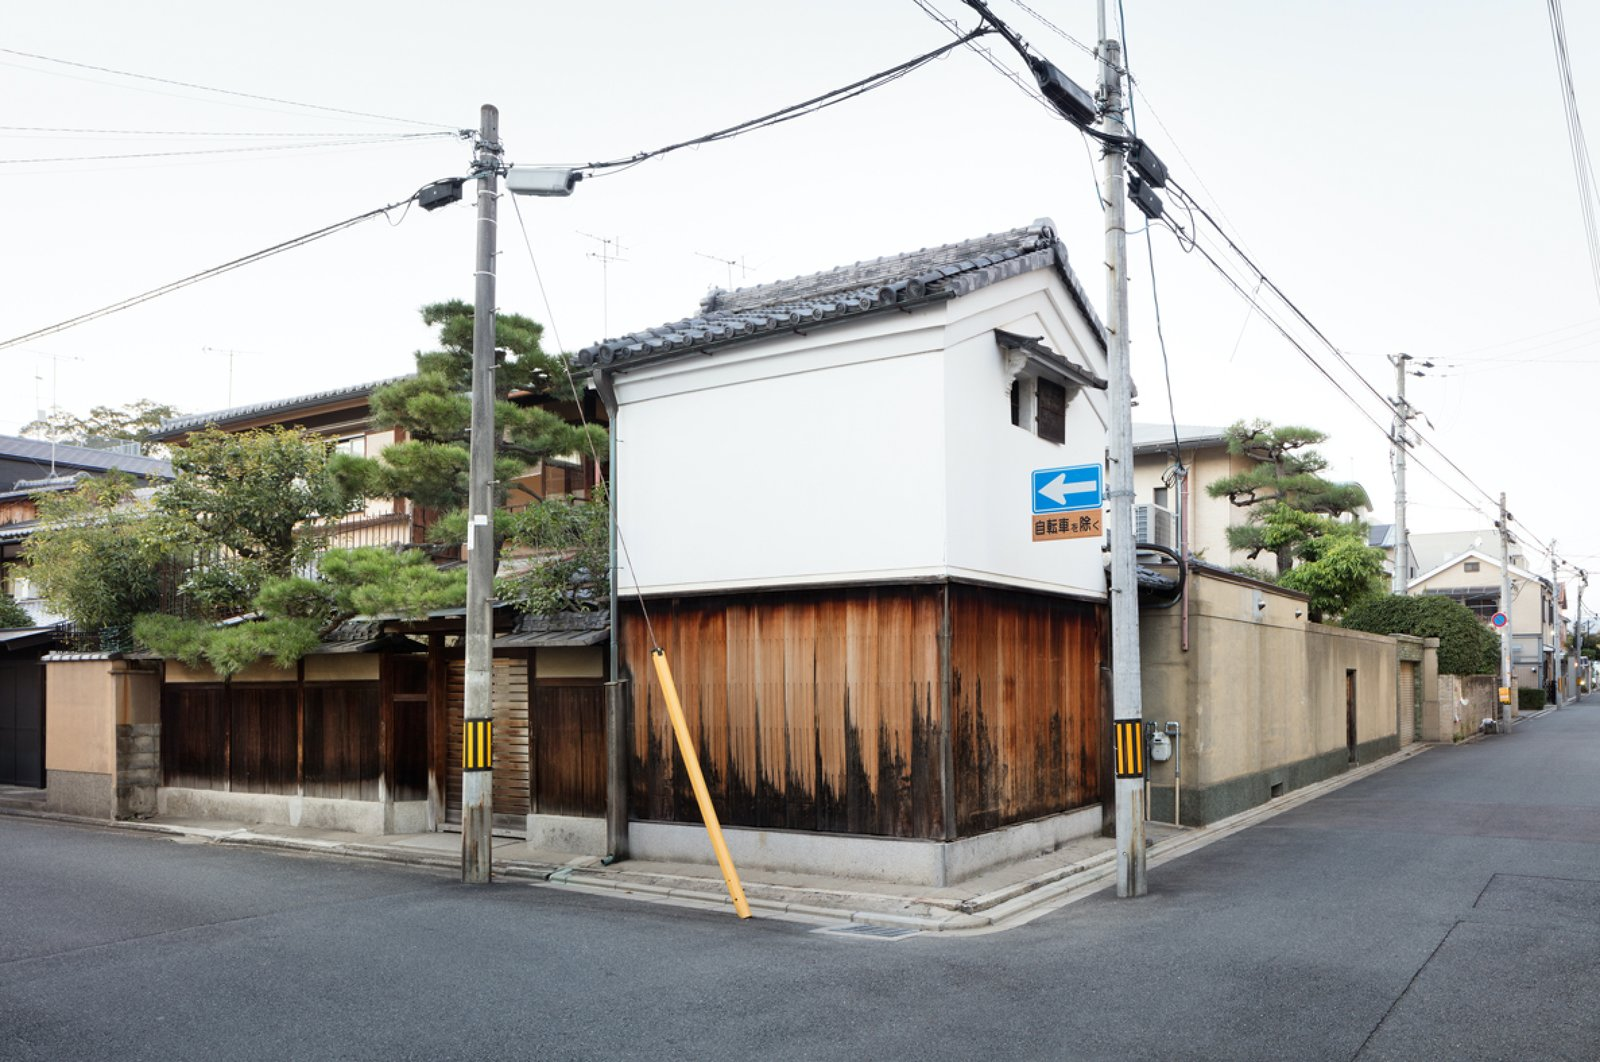 Exterior, Wood Siding Material, House Building Type, Gable RoofLine, Stucco Siding Material, and Tile Roof Material Nichinichi Townhouse in Kyoto, Japan  Nichinichi Townhouse from A Minimalist Townhouse Provides Serene Accommodations in Historic Kyoto